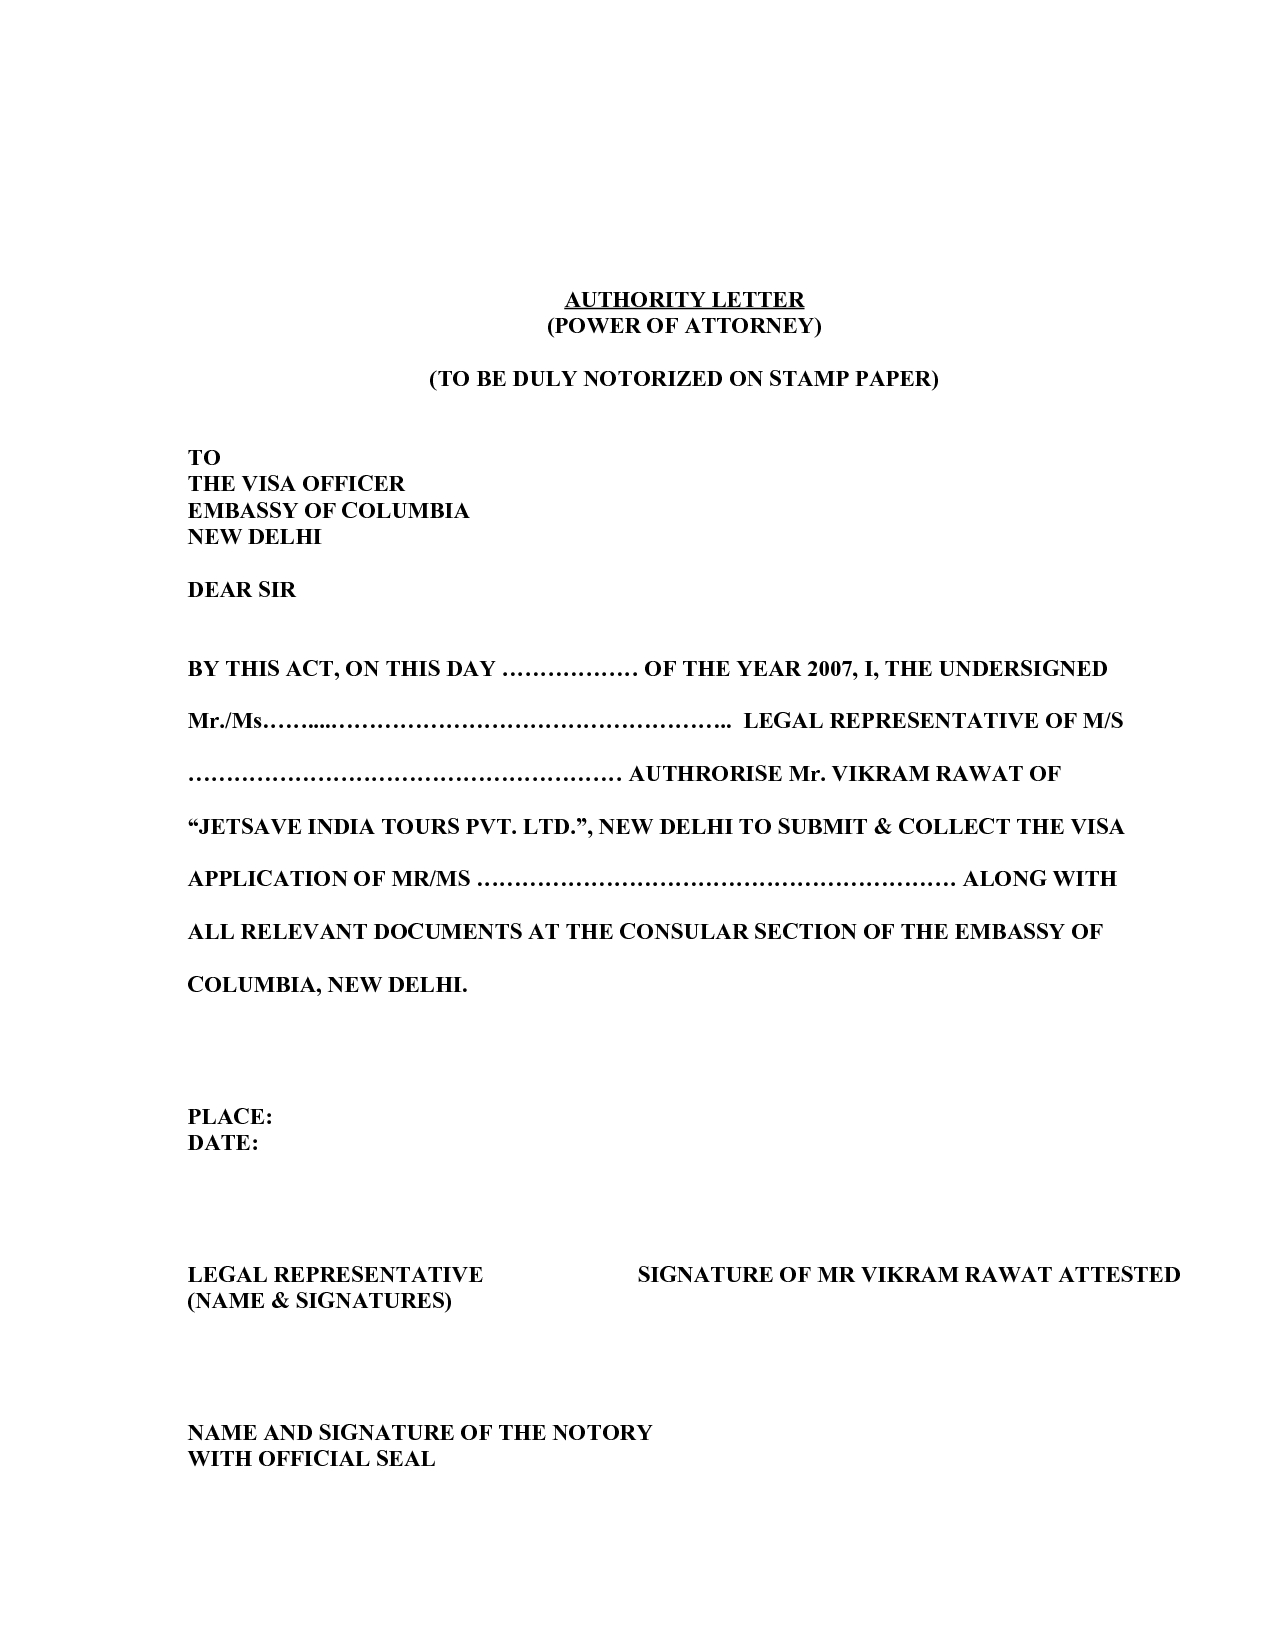 Power Of attorney Letter Template - Poa Letter Template Acurnamedia